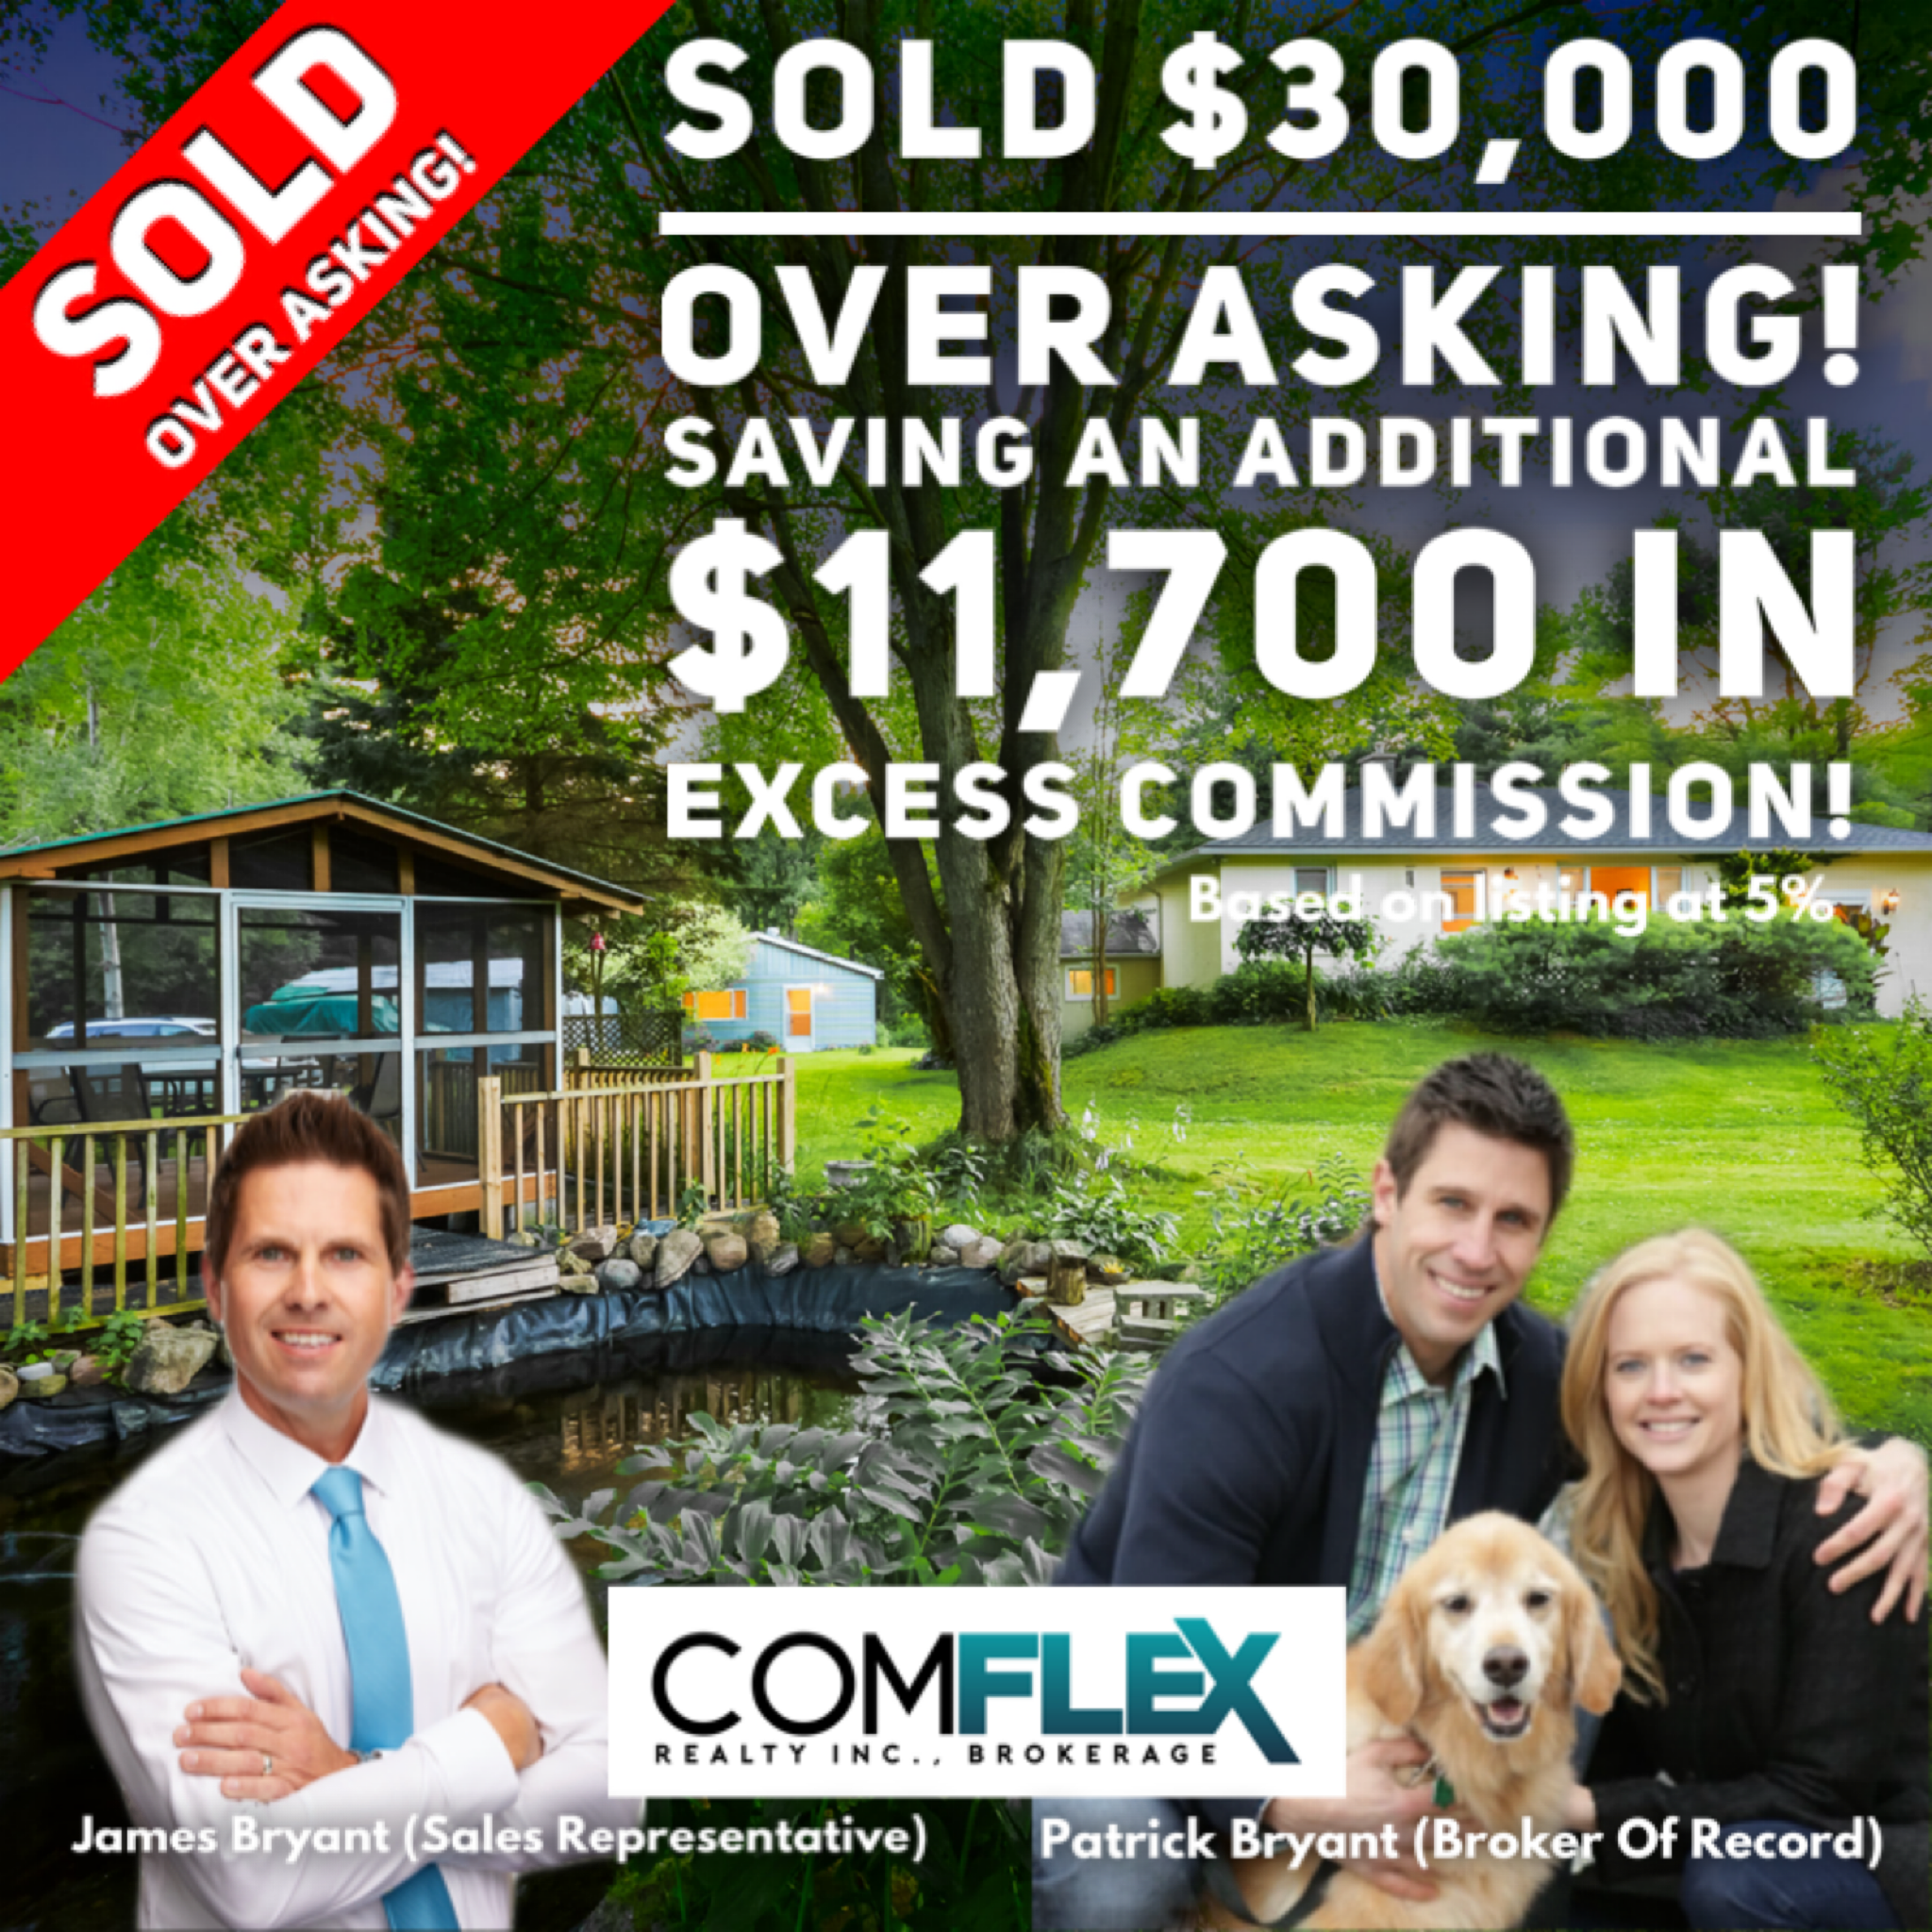 SOLD $30,000 OVER ASKING!  SAVING $11,700 IN EXCESS COMMISSION!